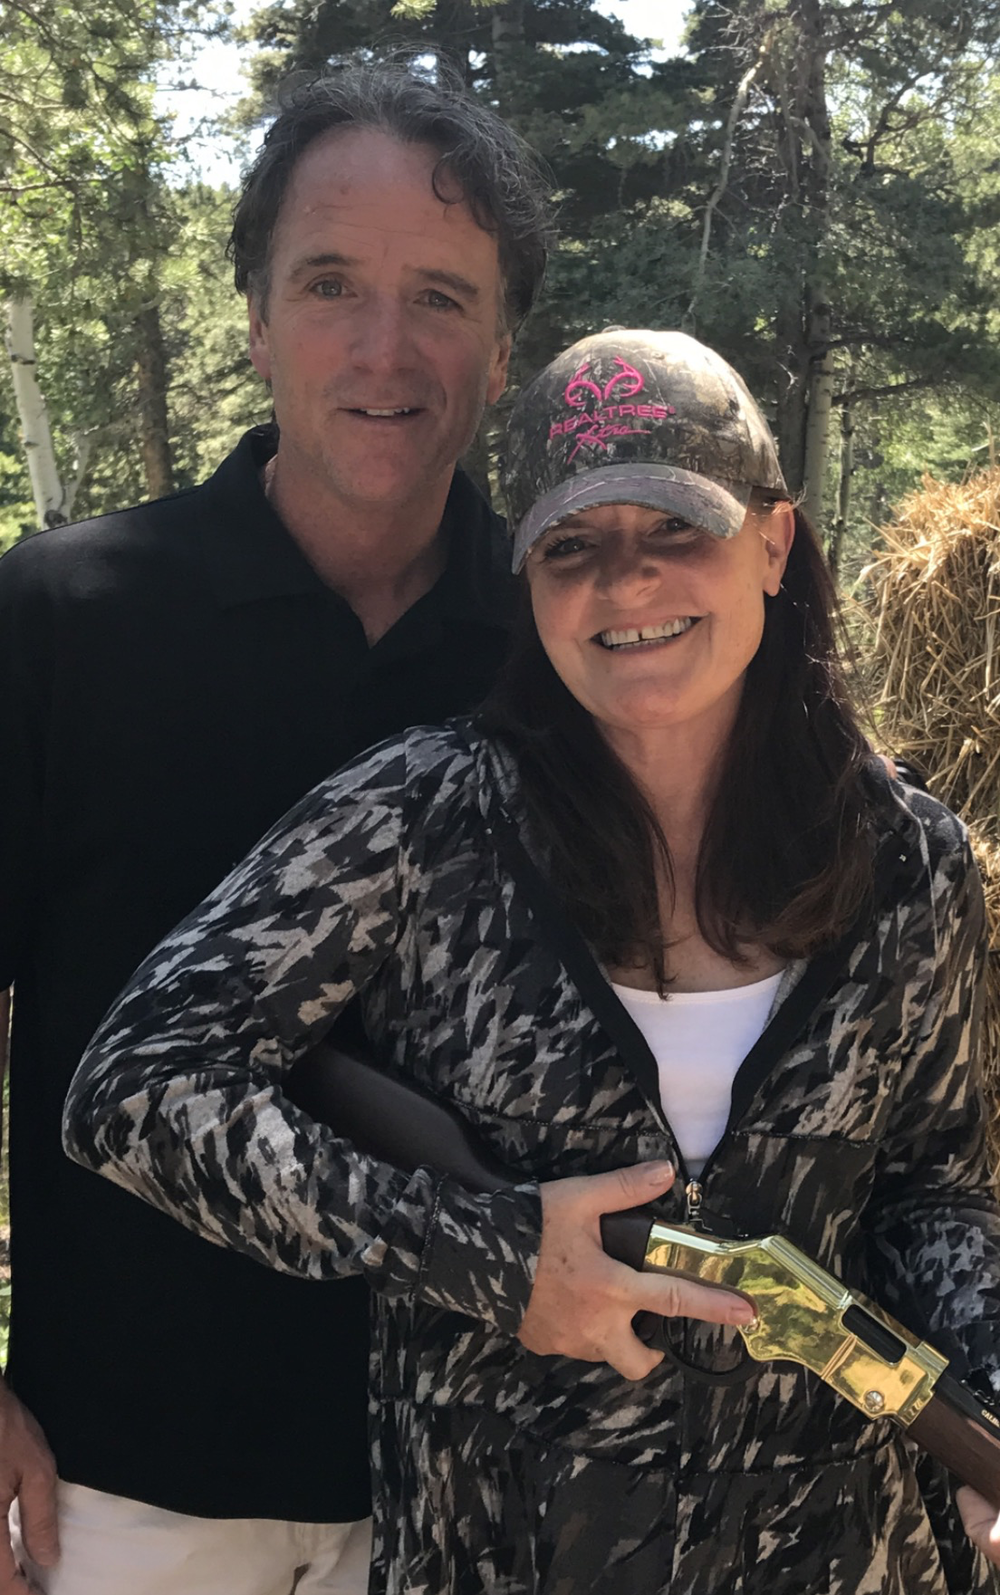 Jim Liberatore - President & CEO of Outdoor Sportsman Group